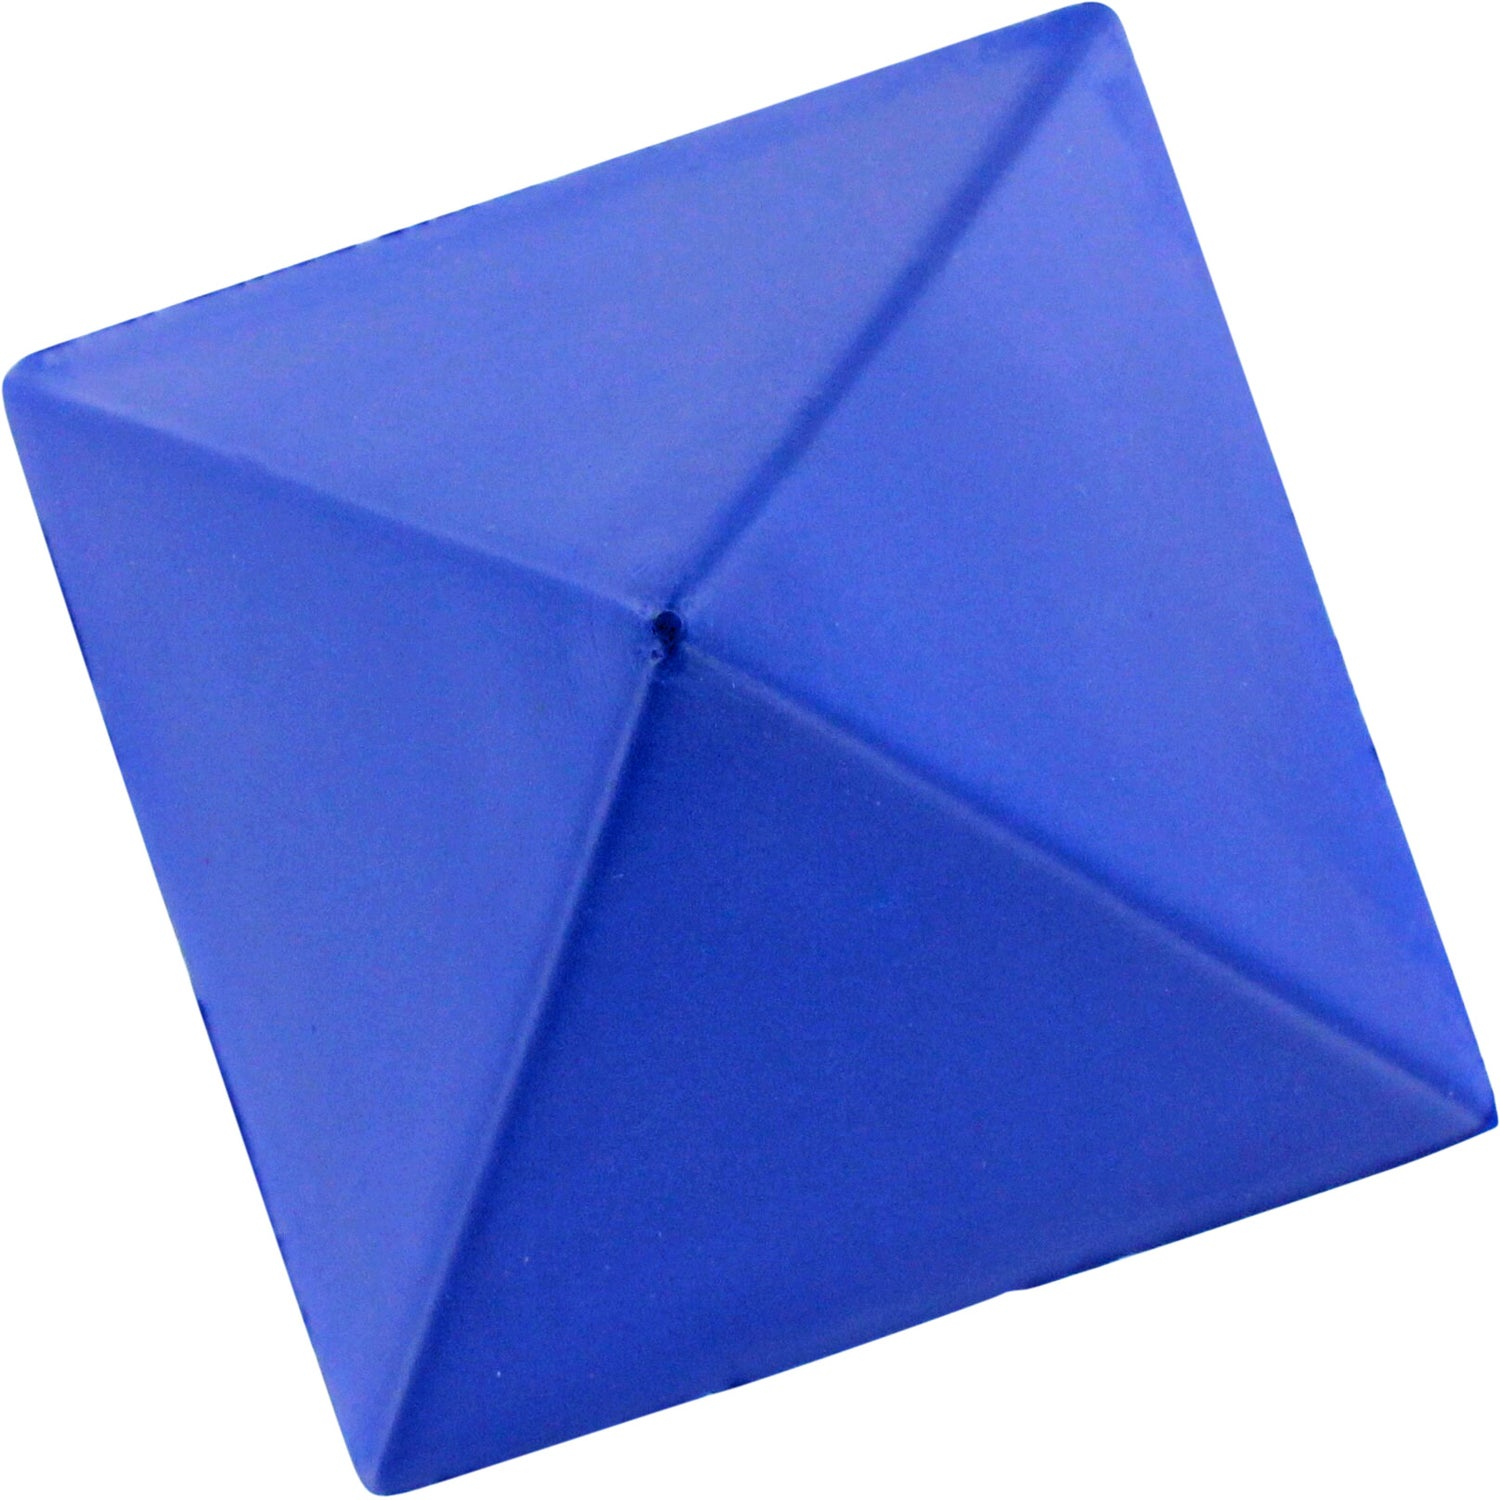 Pyramid Stress Ball